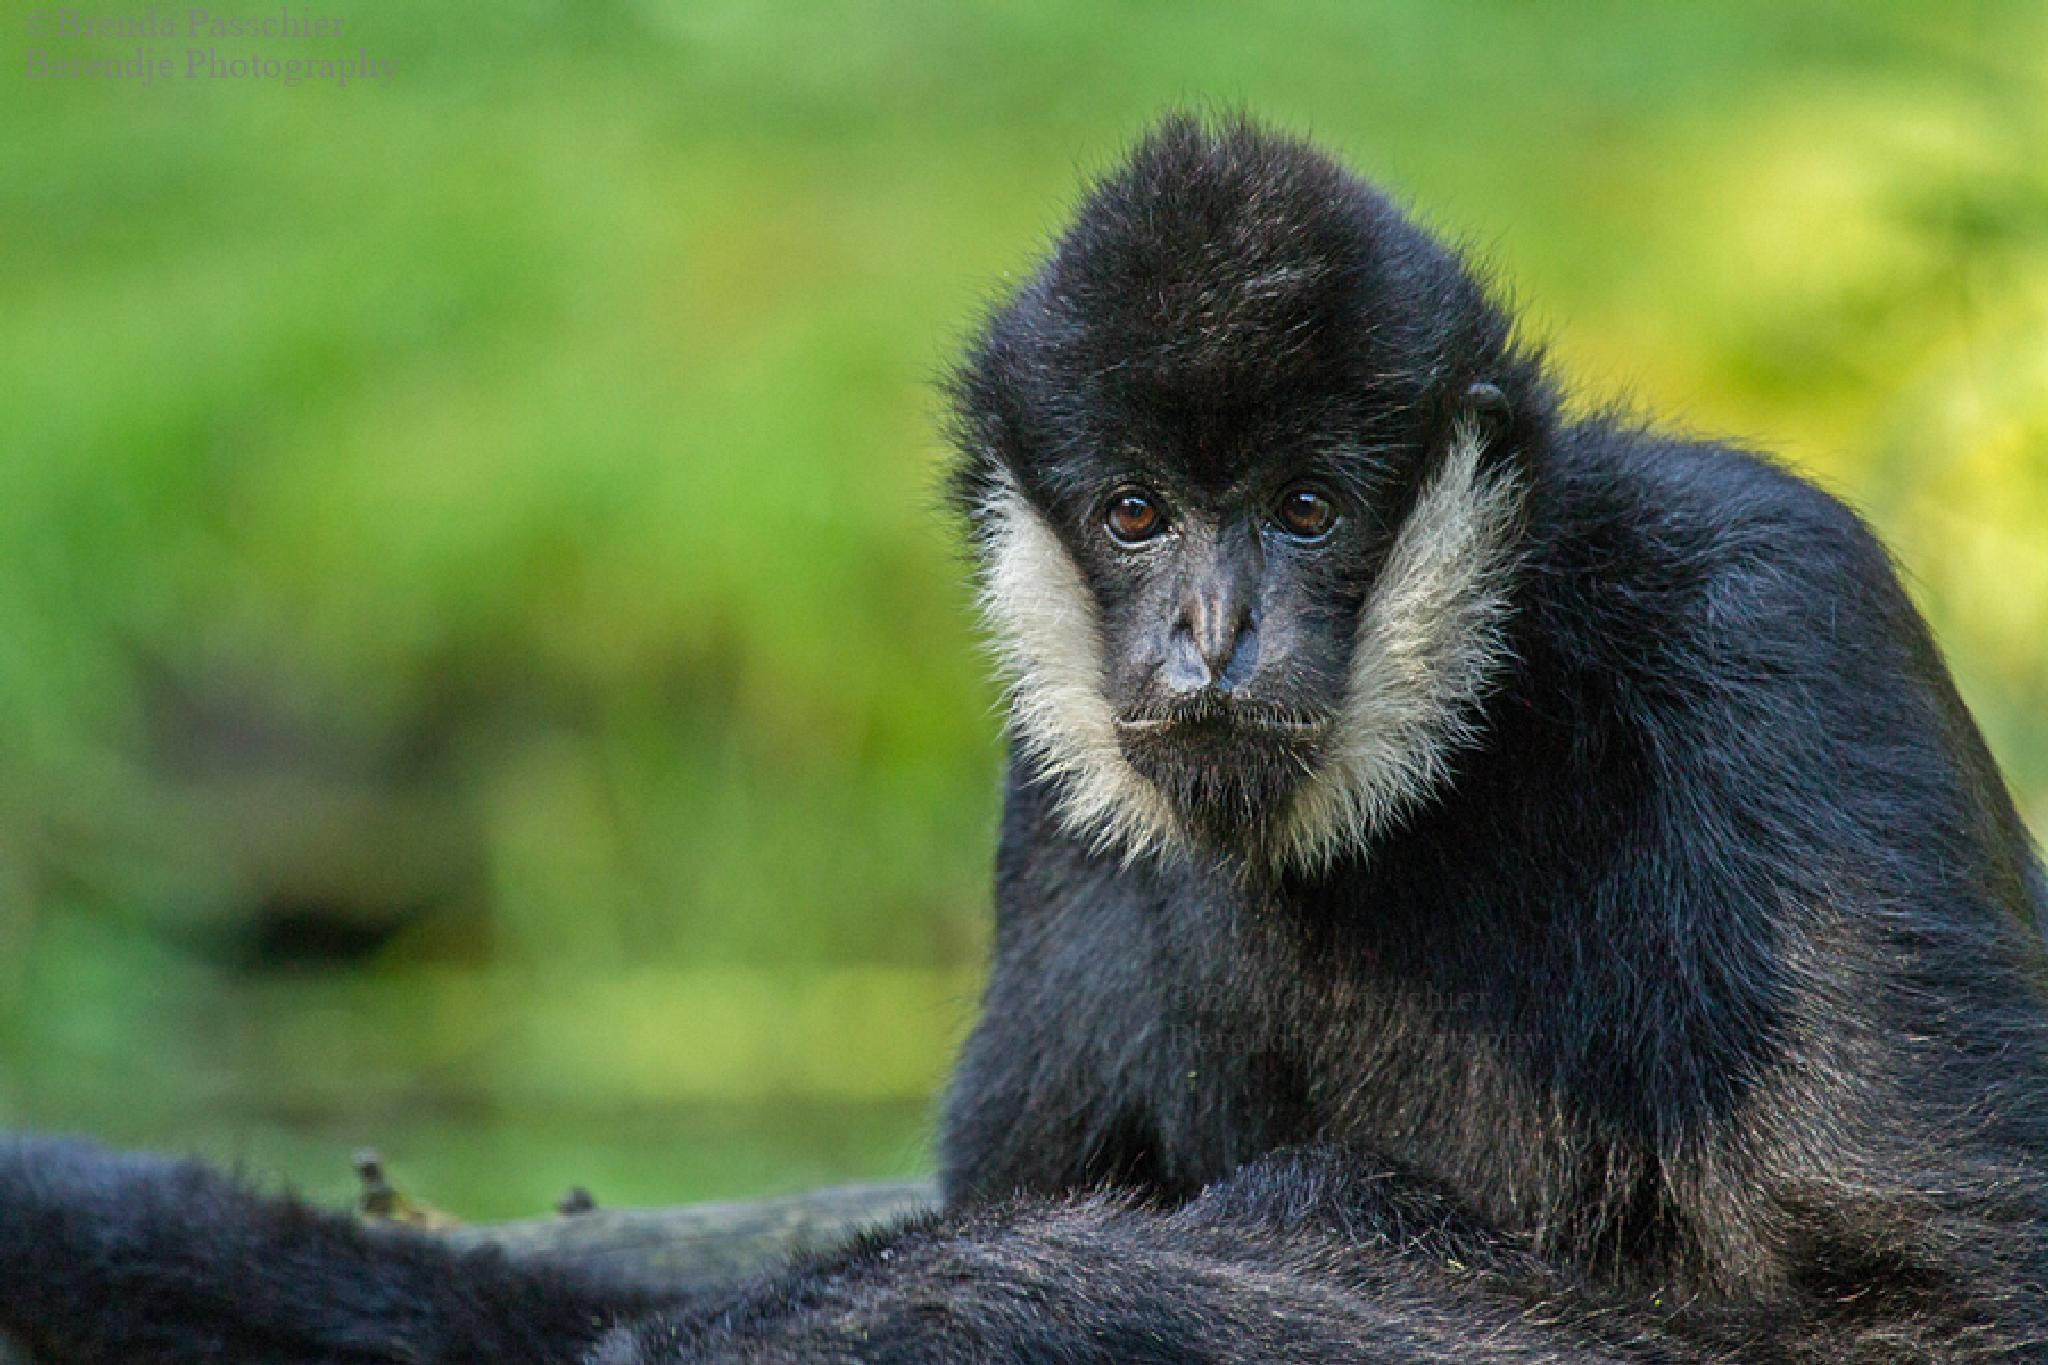 White cheeked gibbon. by Brenda Passchier